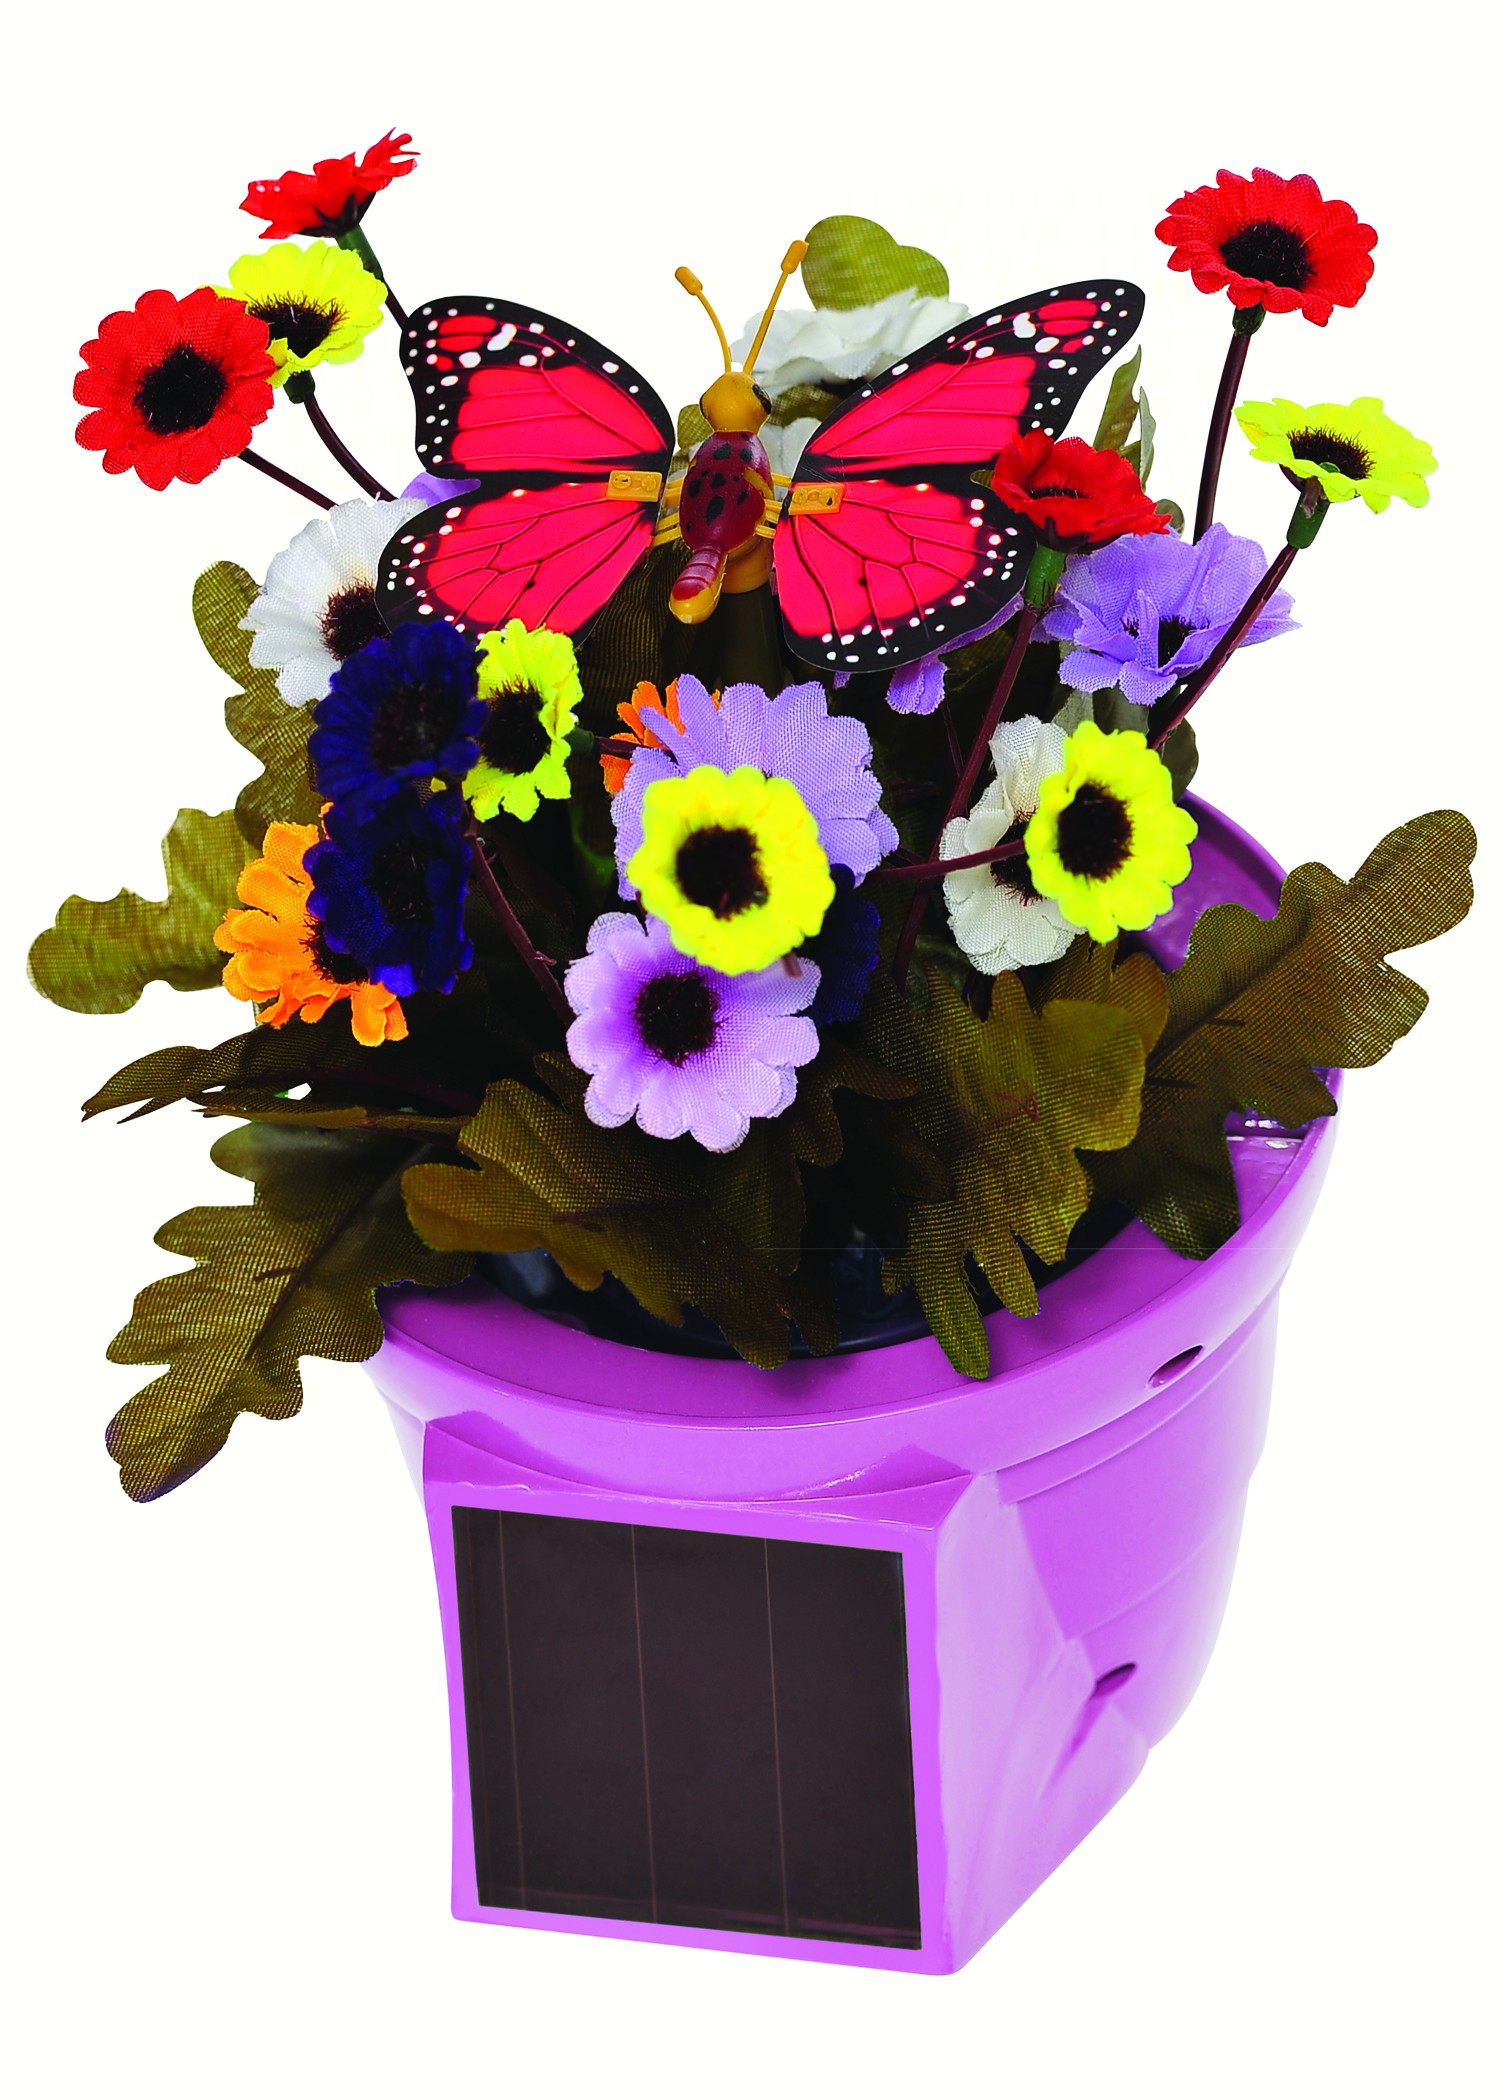 Solar Pals Flapping Patio Pot with Pink Pot and Red Butterfly